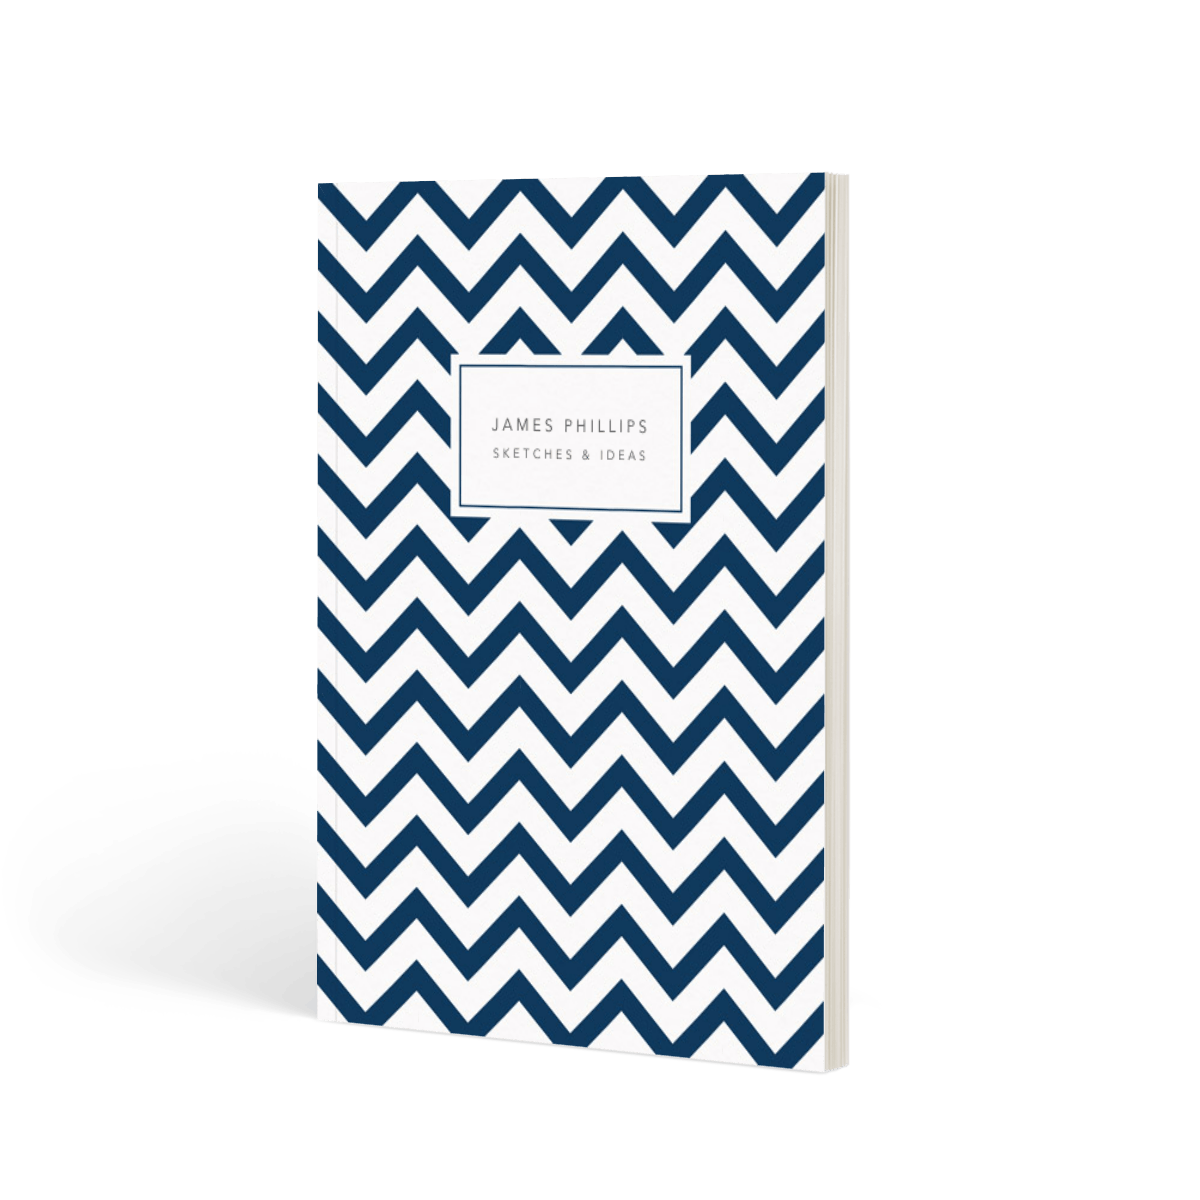 Https%3a%2f%2fwww.papier.com%2fproduct image%2f29946%2f3%2fnavy chevrons 7551 front 1534801952.png?ixlib=rb 1.1